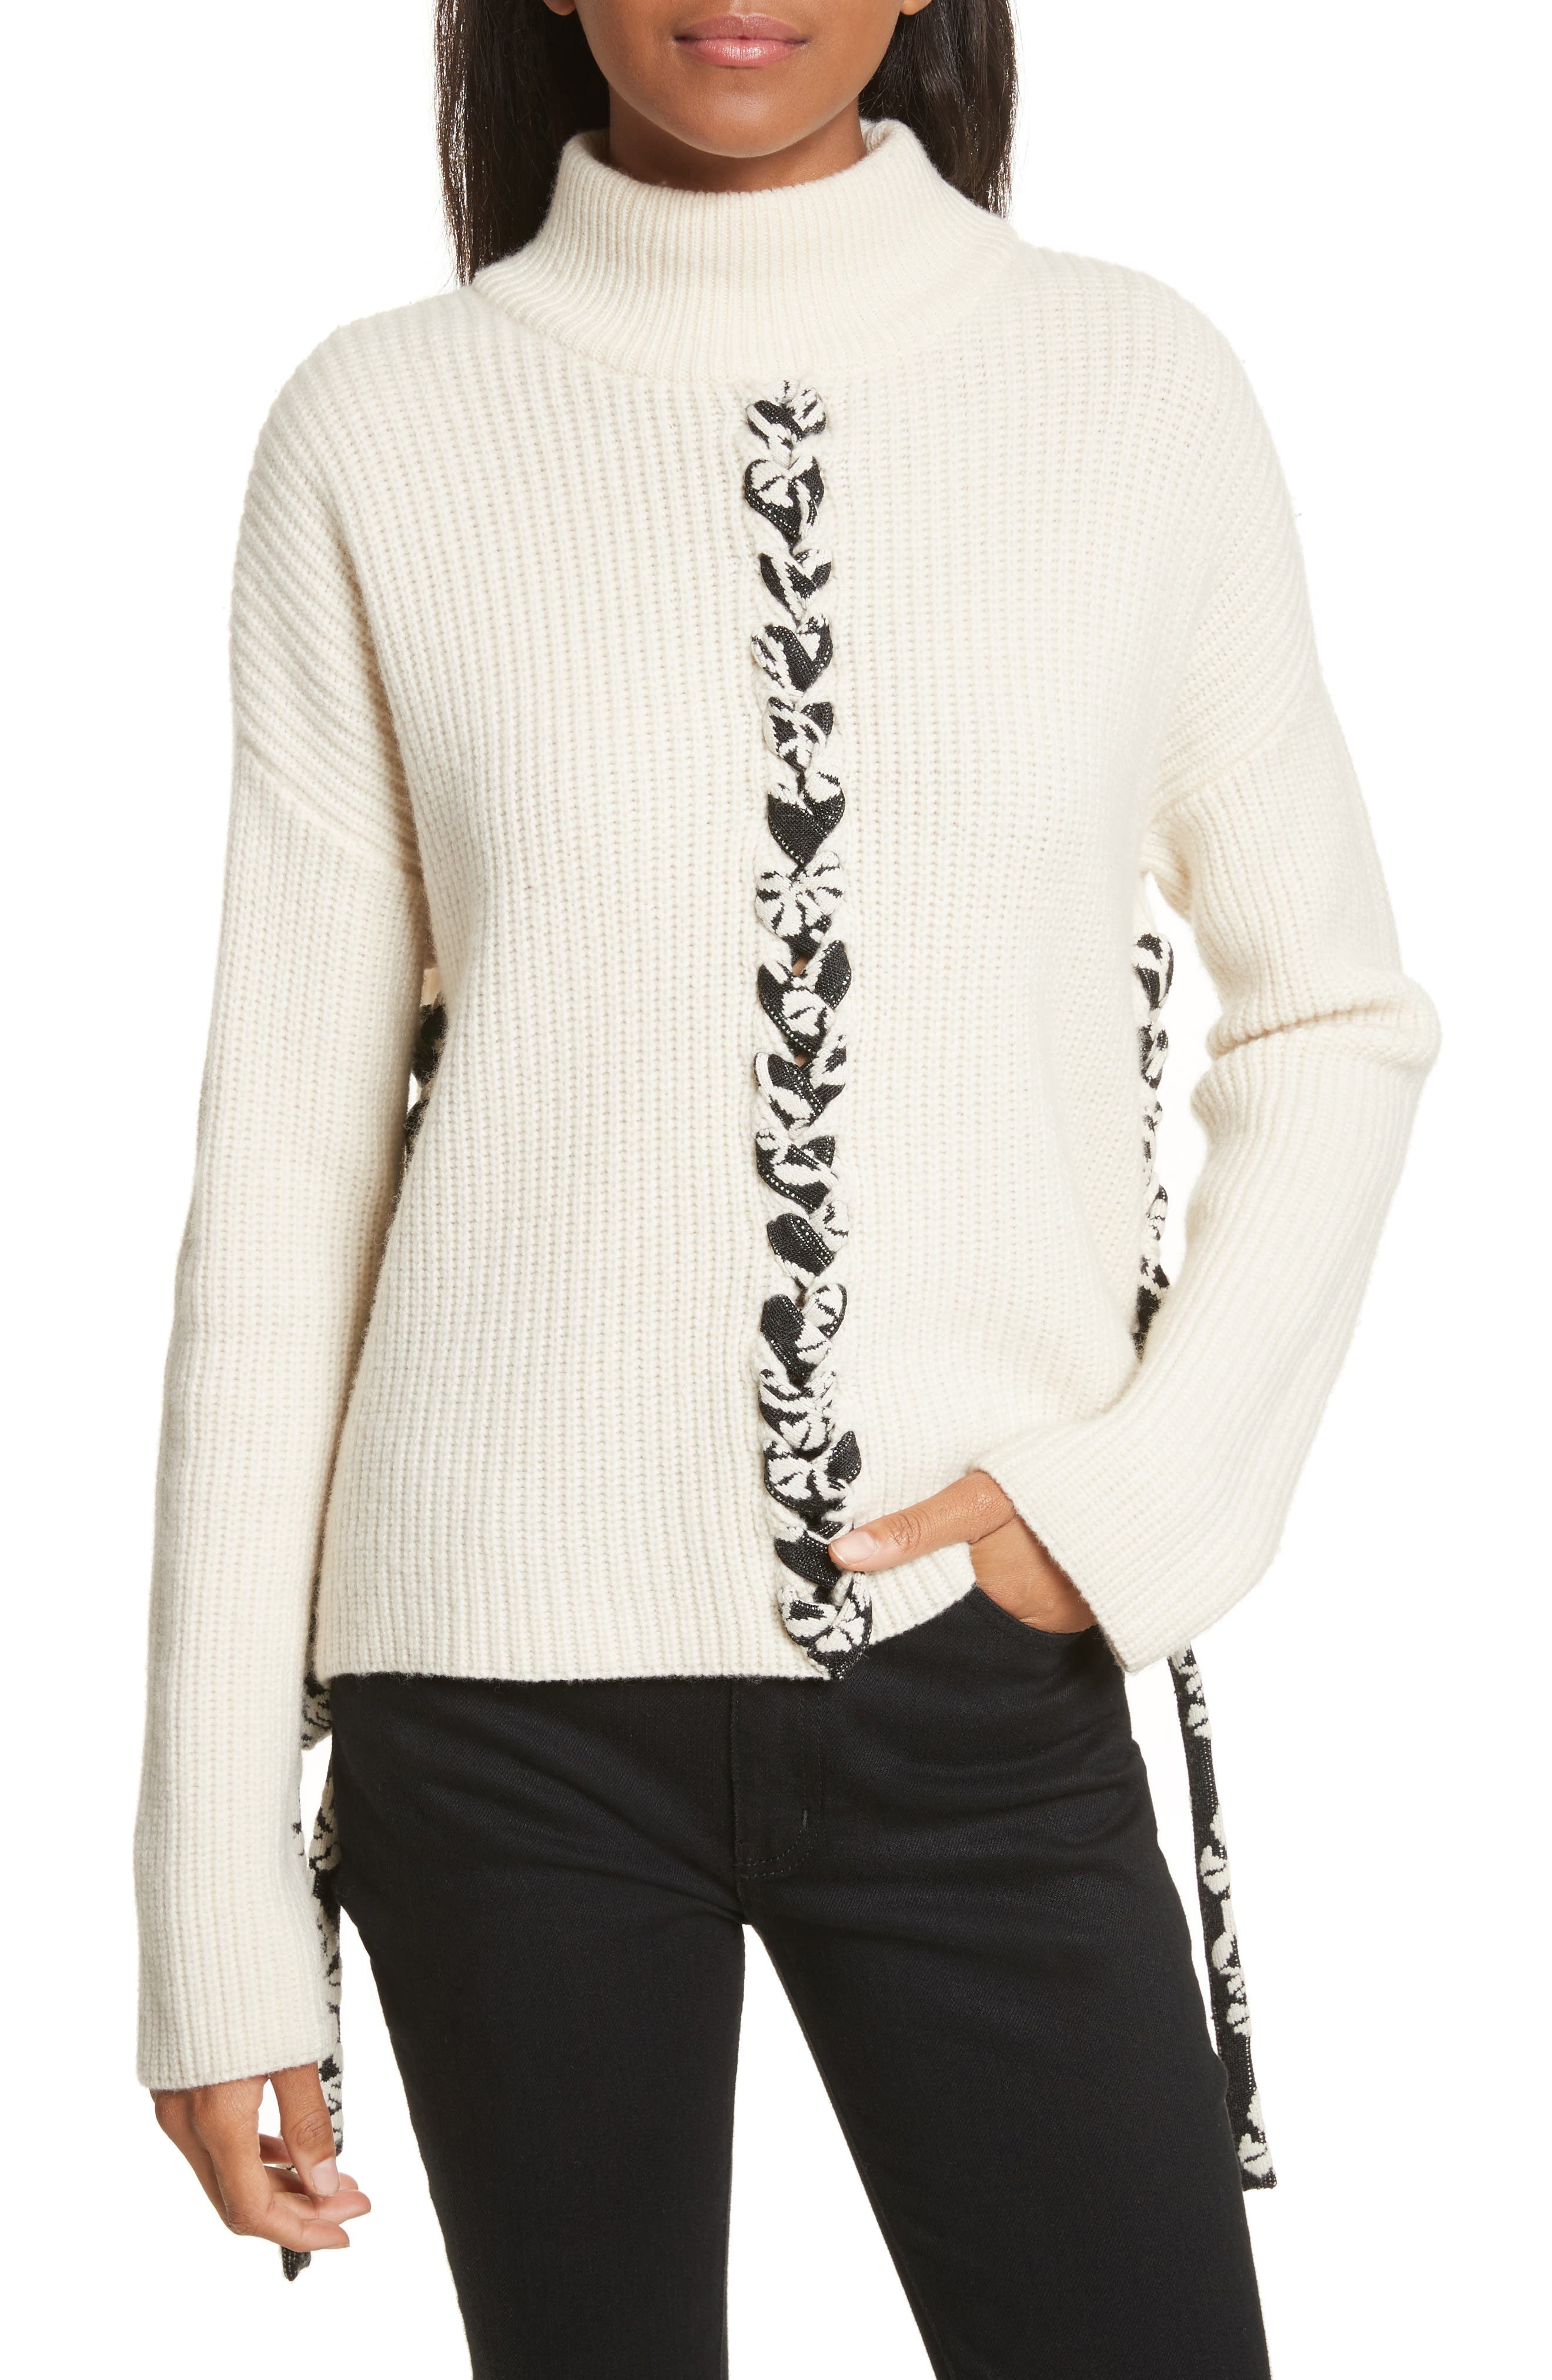 Mughal Lace-Up Sweater,                             Main thumbnail 1, color,                             Off White W/ Jacquard Ties